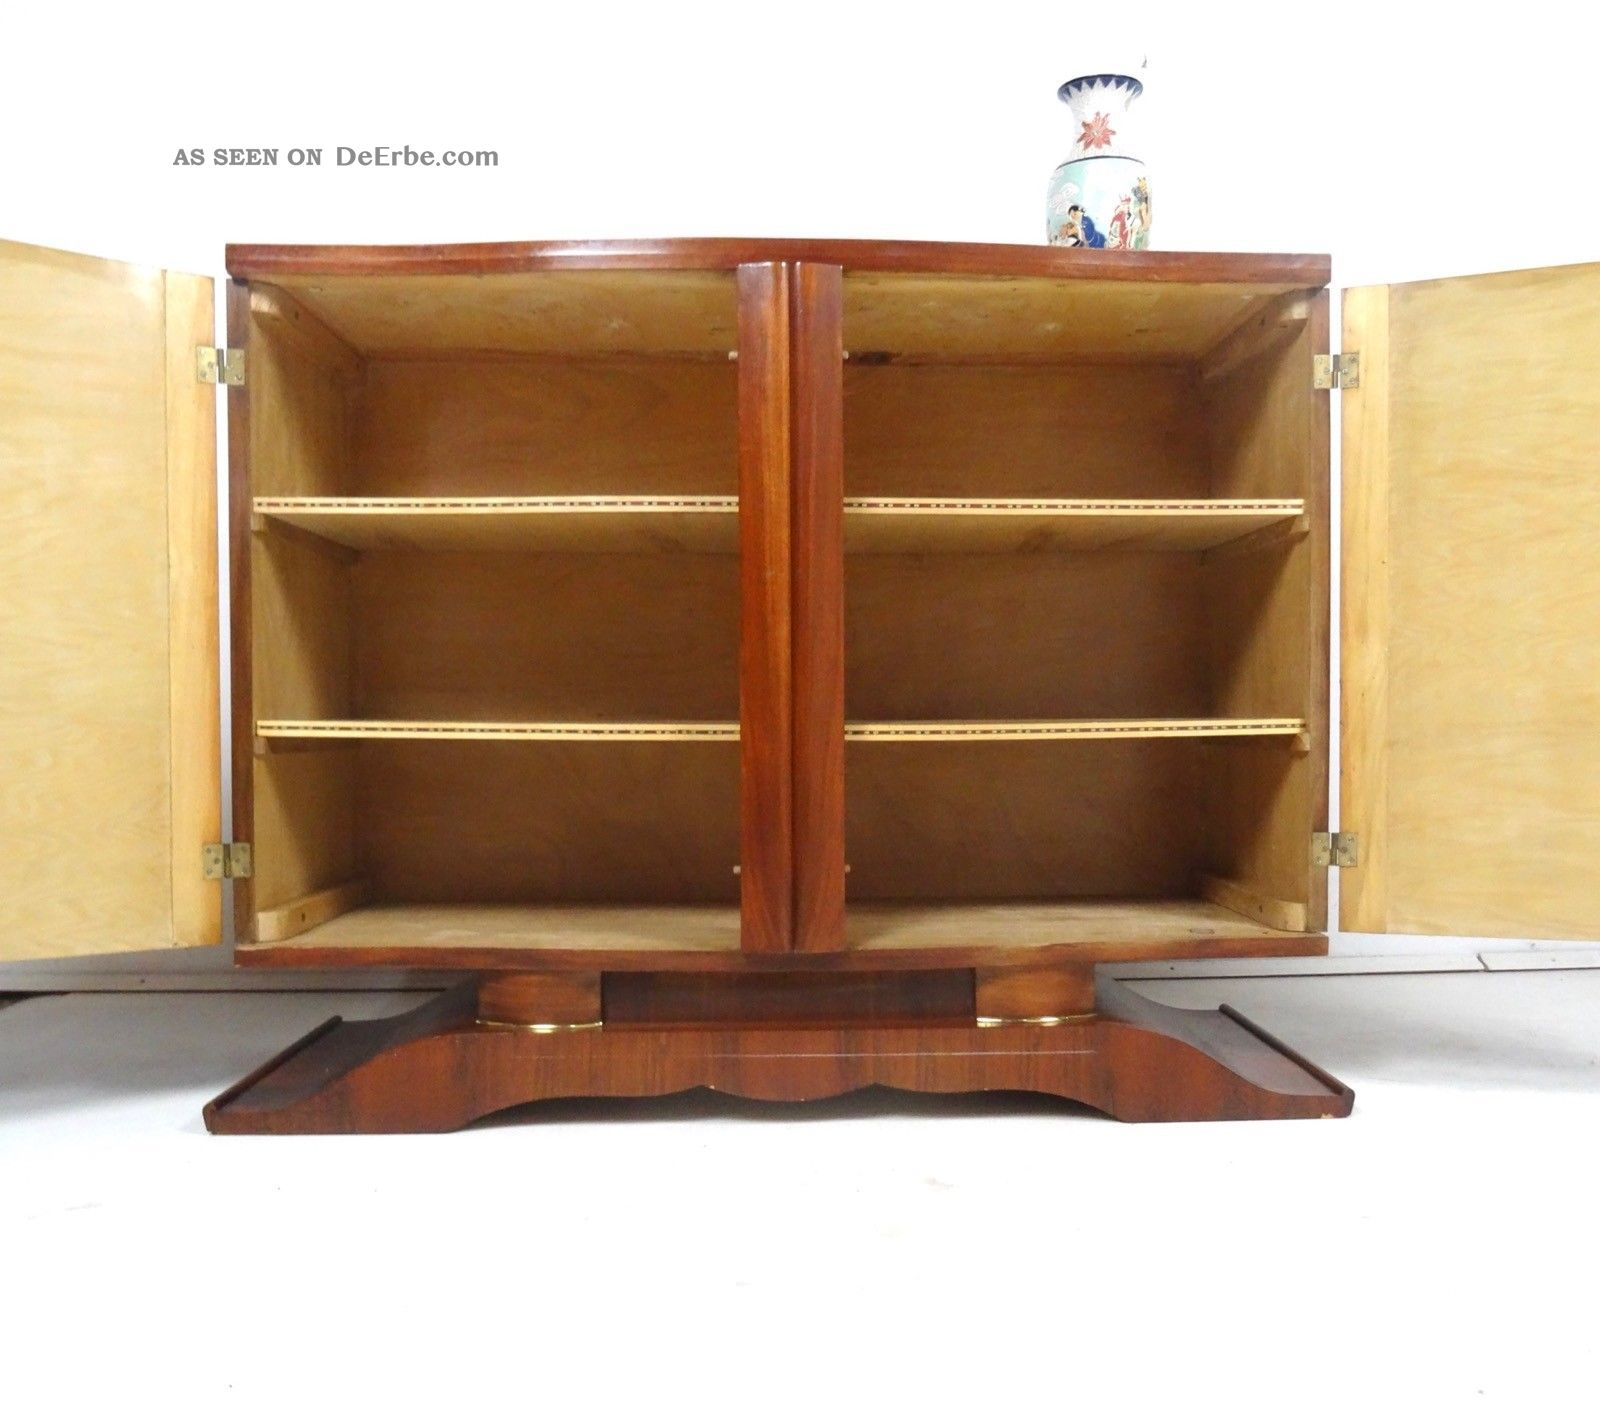 art deco sideboard modernist design atelier kommode antik m bel 1930. Black Bedroom Furniture Sets. Home Design Ideas